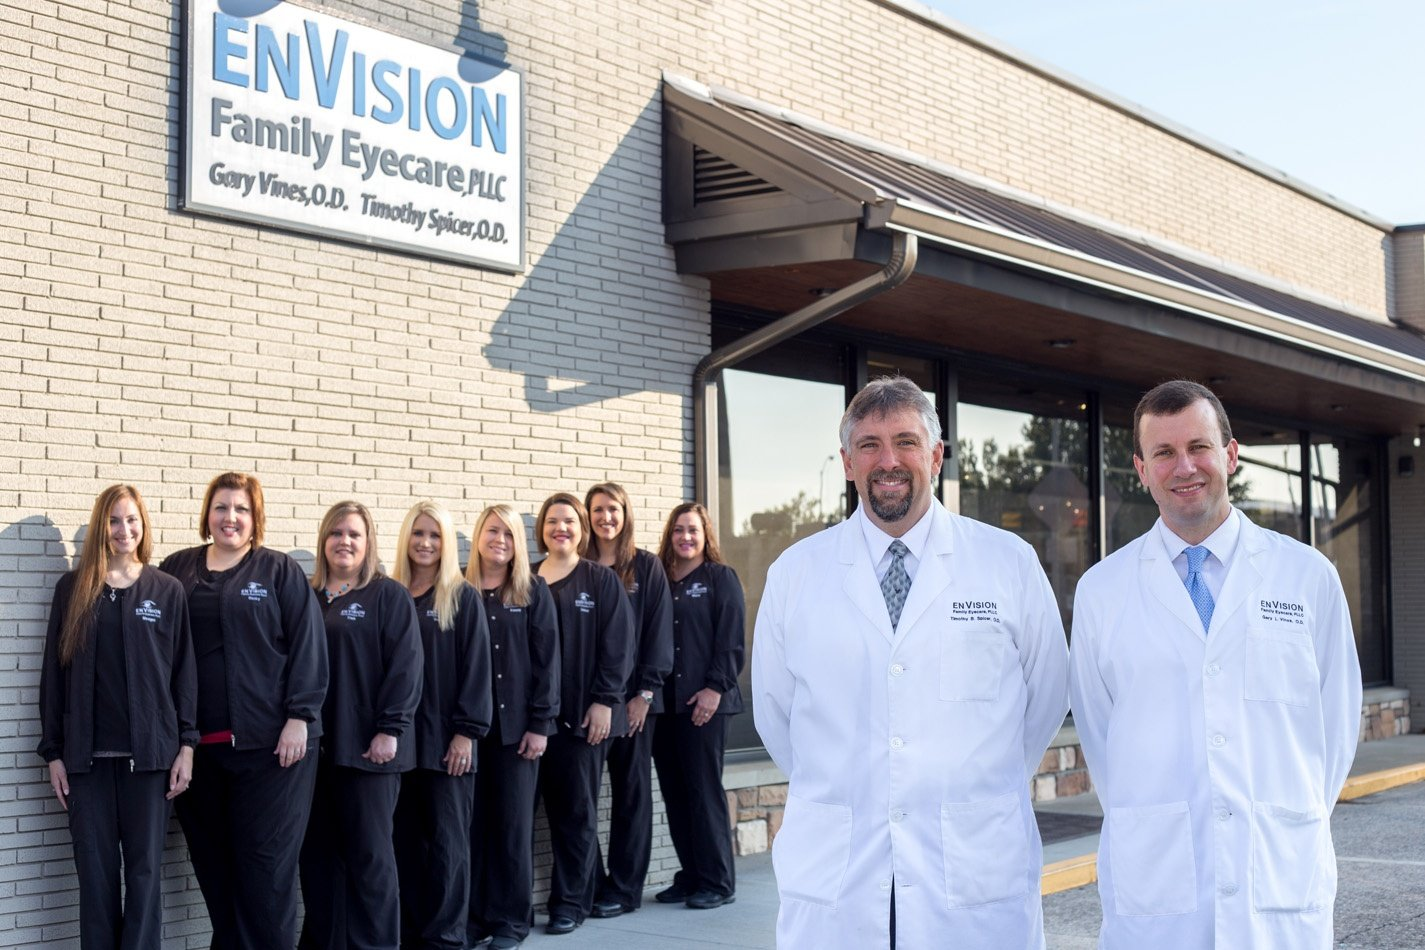 Envision Family Eyecare